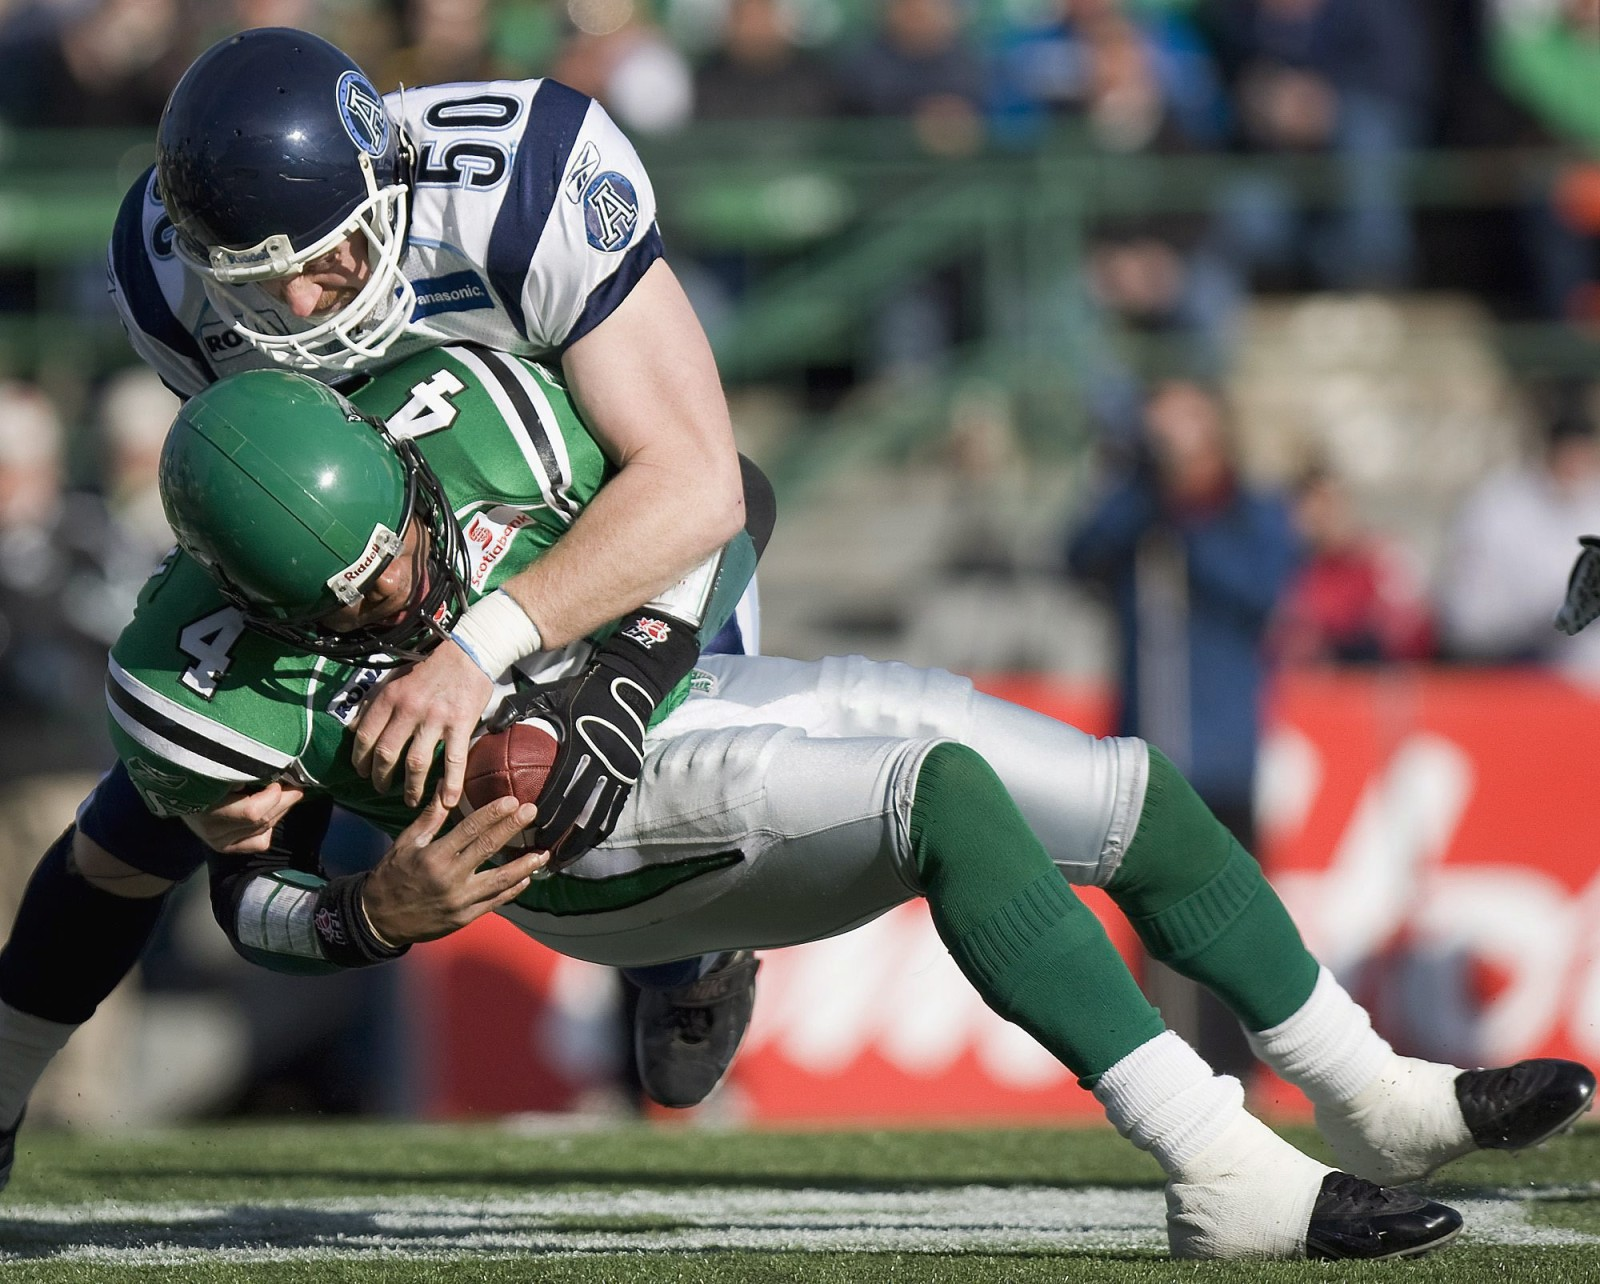 Toronto Argonauts Mike O'Shea sacks Saskatchewan Roughriders QB Kerry Joseph in first quarter CFL action on Saturday, Nov.3, 2007 in Regina, Sask. THE CANADIAN PRESS/Troy Fleece